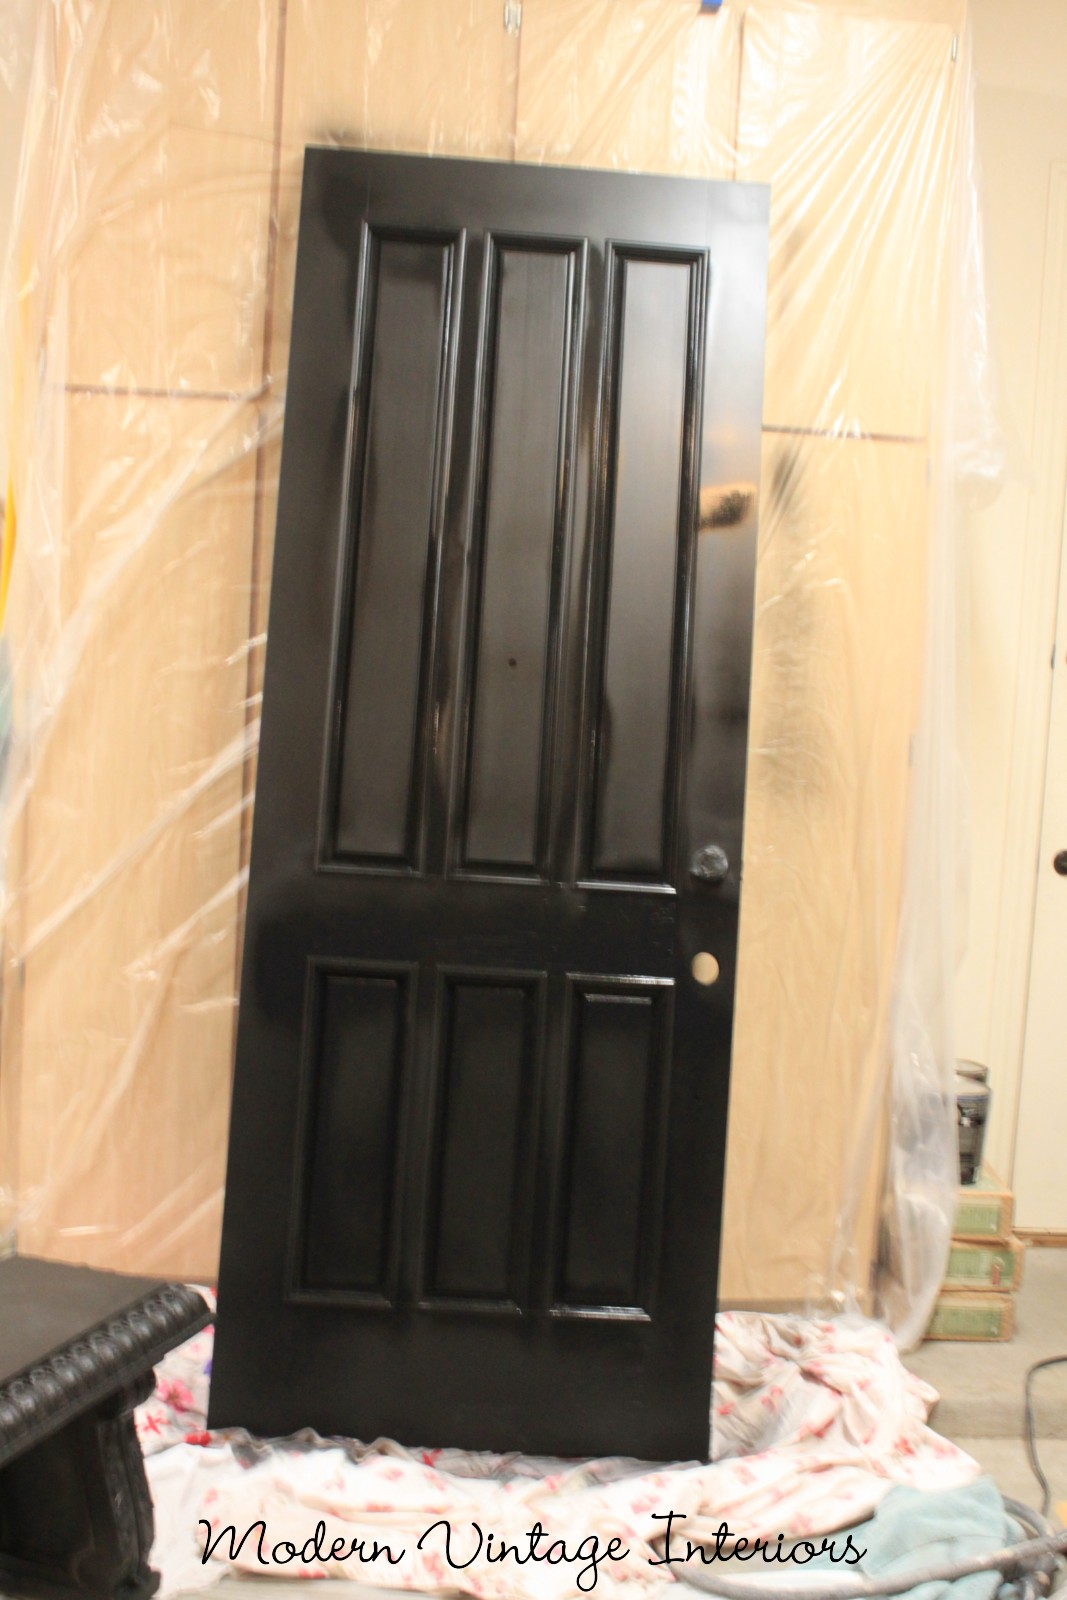 remodelaholic painting a wooden exterior door black. Black Bedroom Furniture Sets. Home Design Ideas